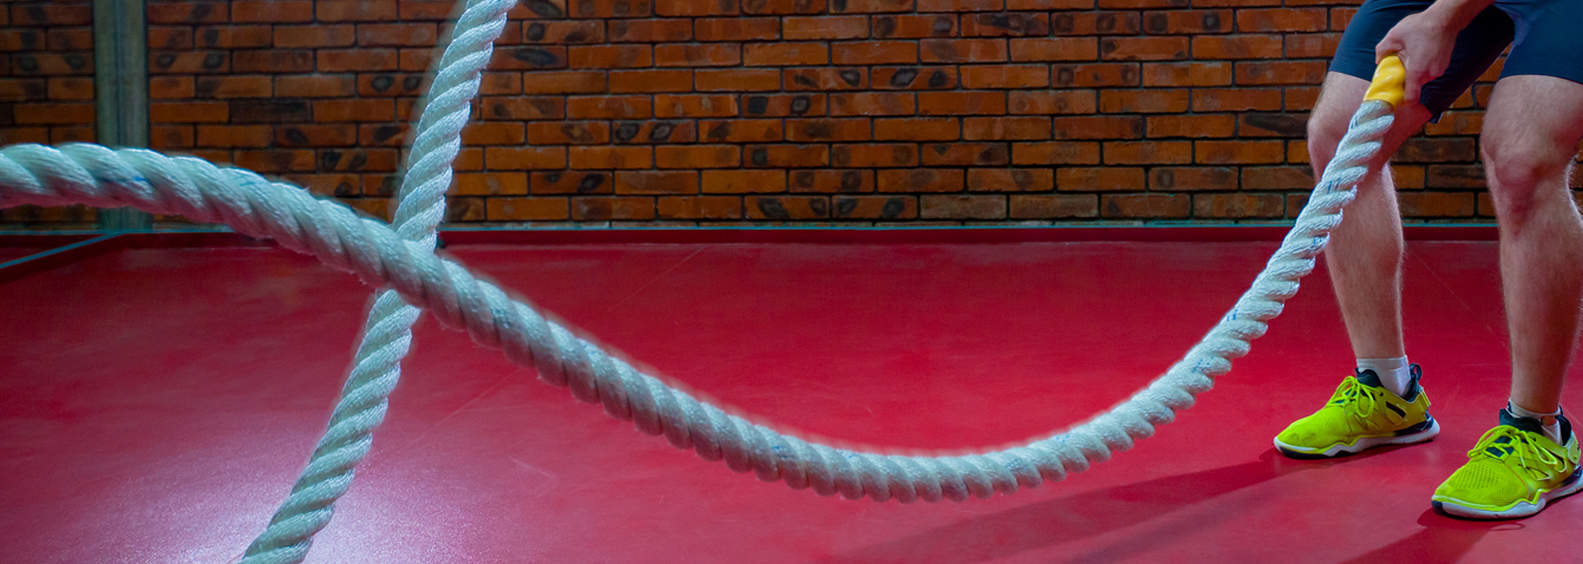 5 Battle Ropes Exercises for Beginners